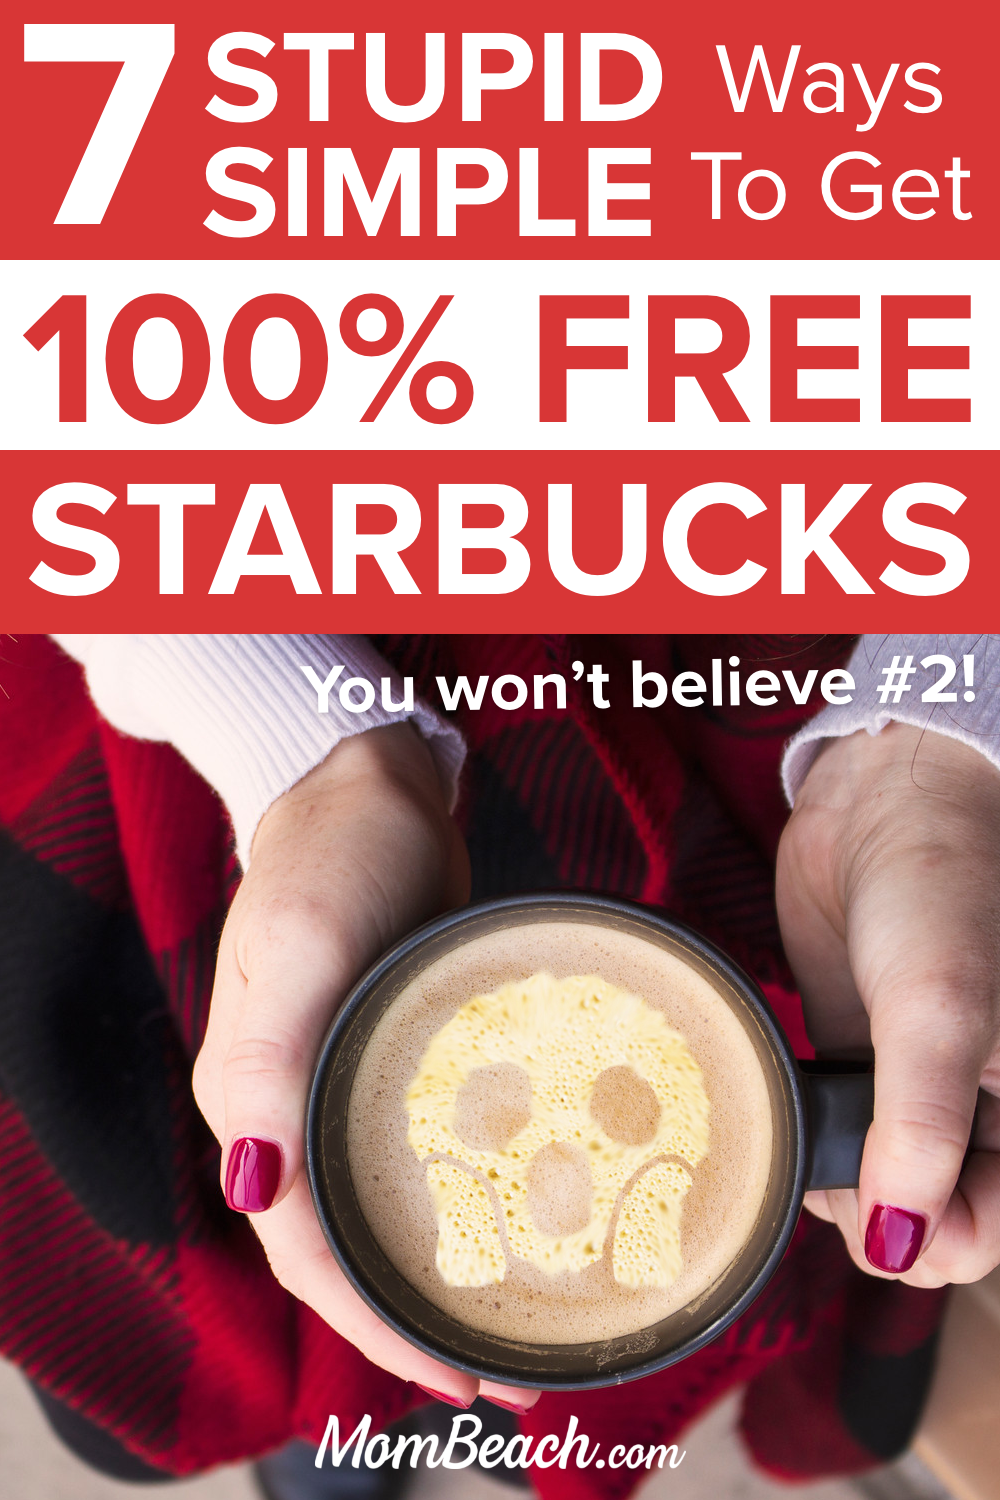 Woah! Did you know you can get FREE Starbucks drinks? It's true! You won't believe how stupid simple it is to get free Starbucks gift cards and promo codes. I tell you how to get free Starbucks quick and easy. #freestarbucksdrinks #freestarbucks #howtogetfreestarbucks #freestarbucksgiftcards #freestarbuckscodes #freestarbucksproducts